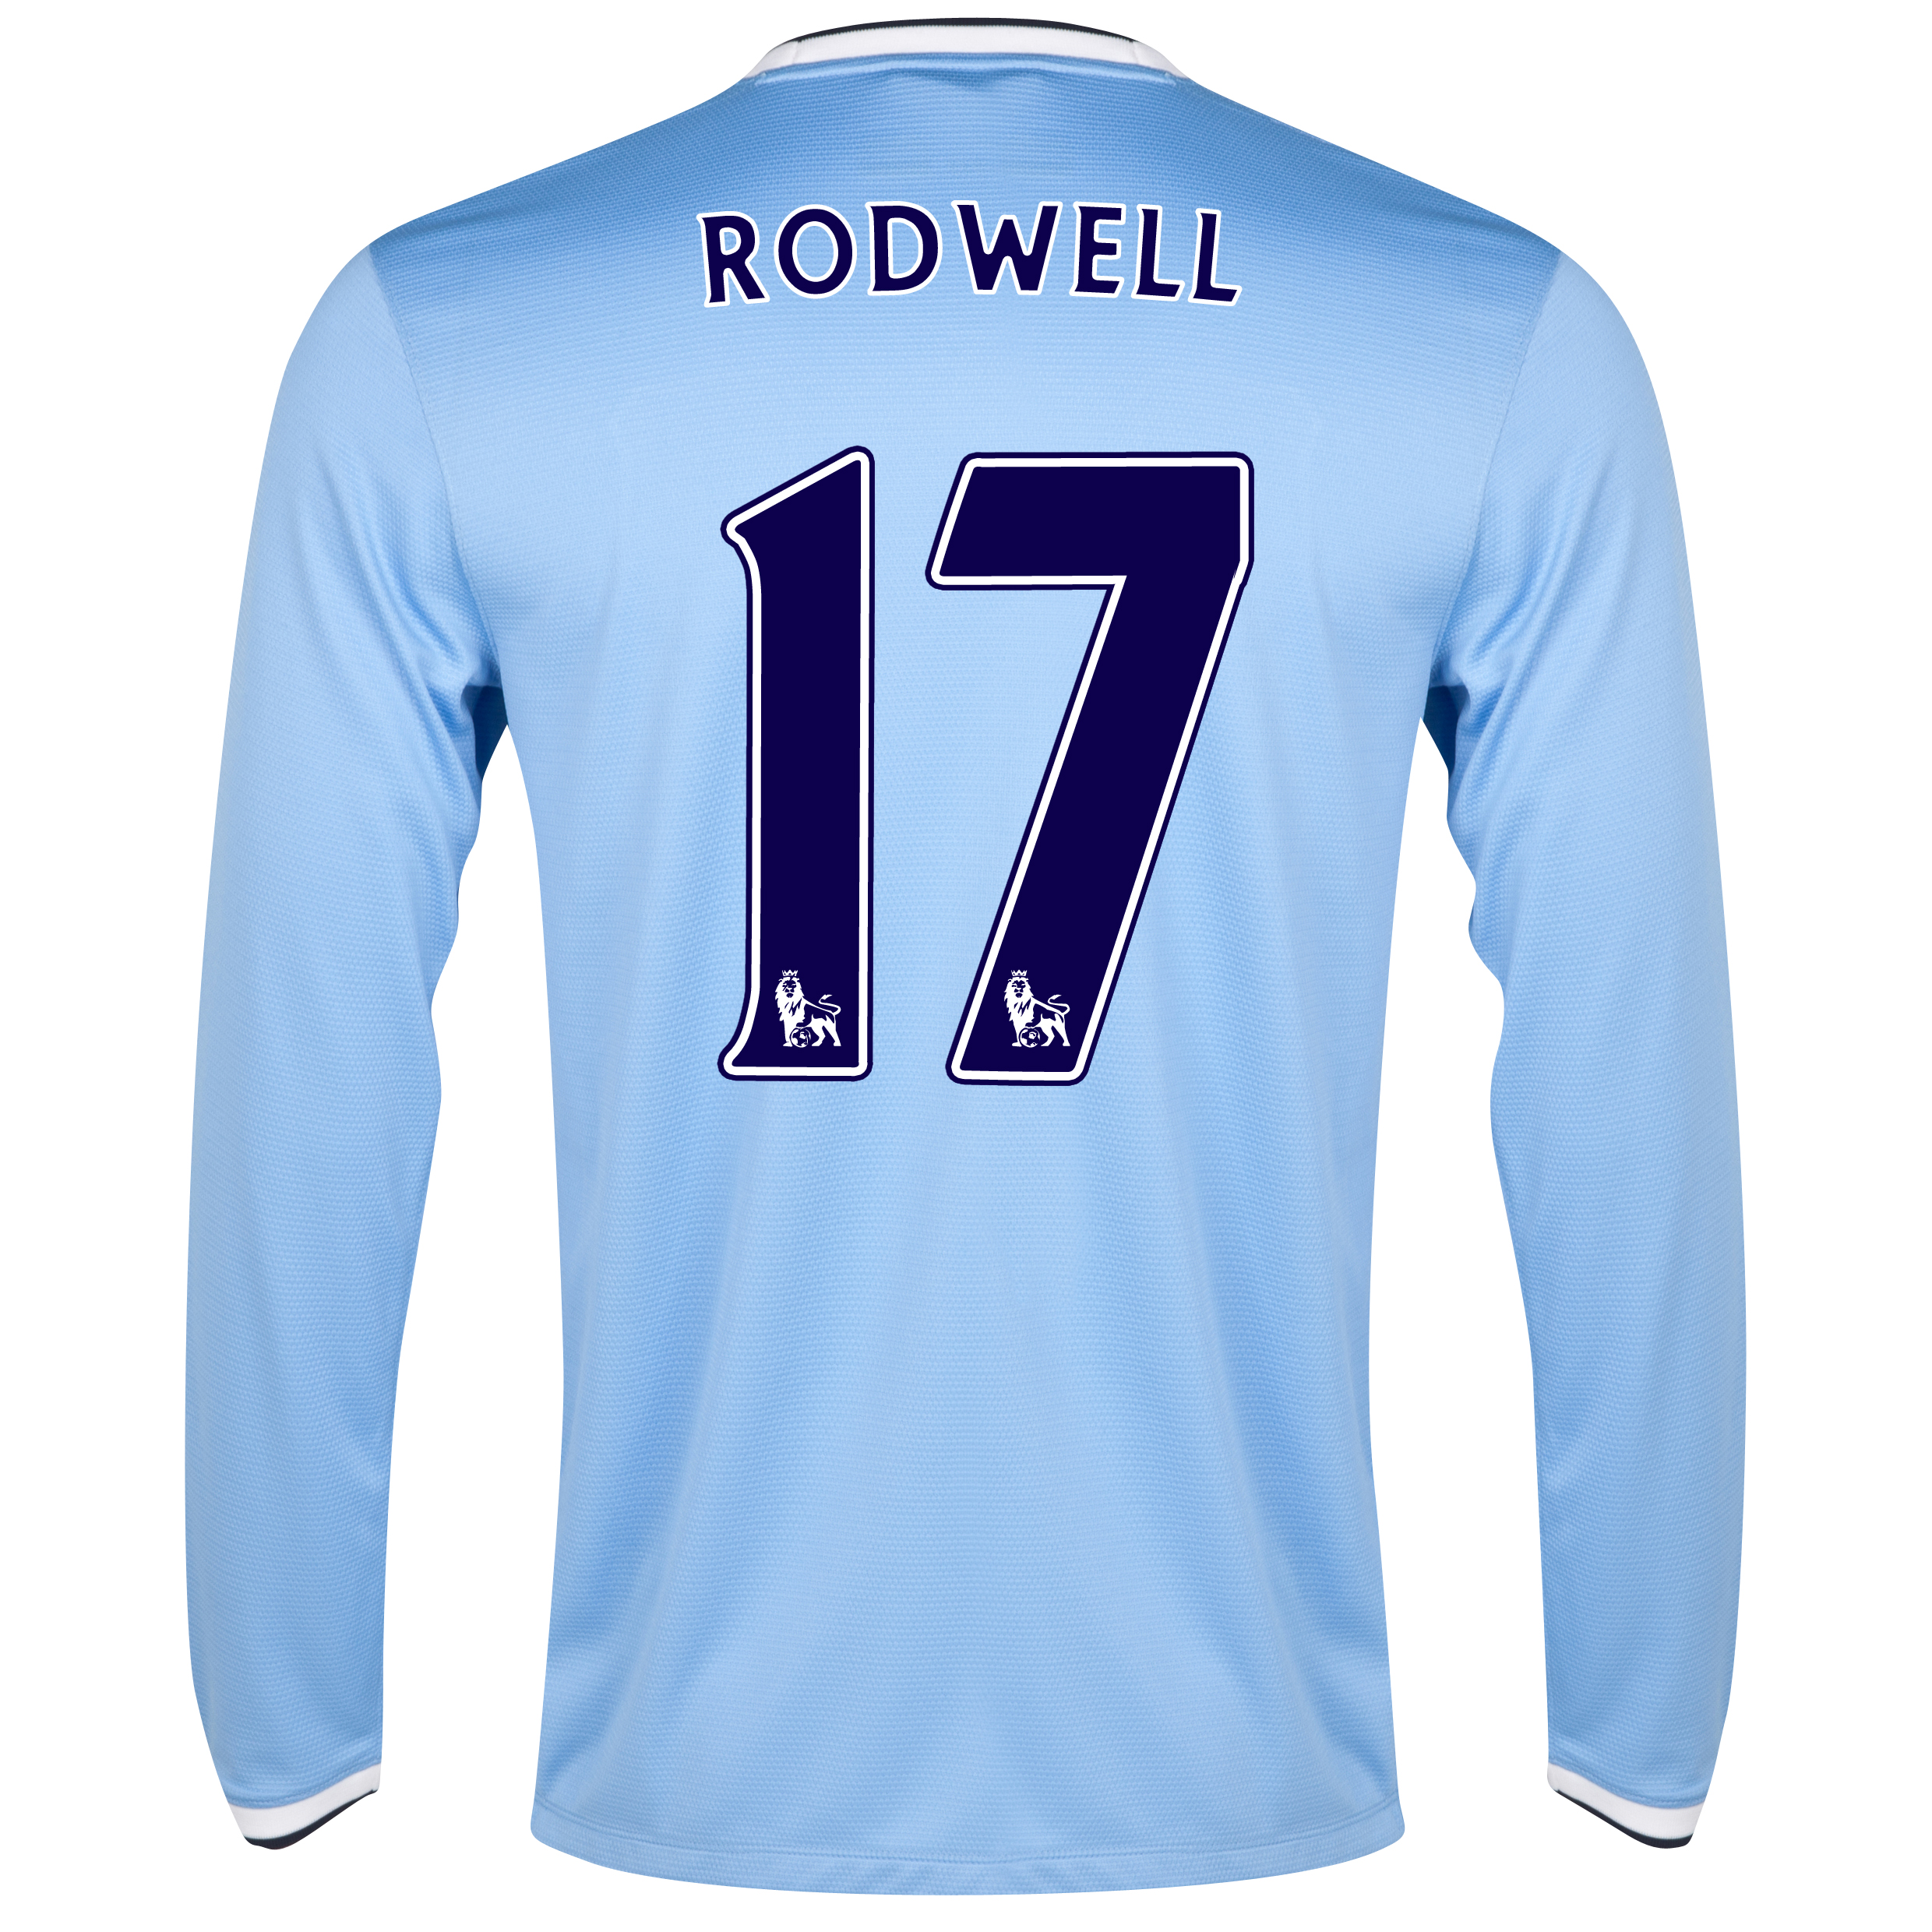 Manchester City Home Shirt 2013/14 - Long Sleeved with Rodwell 17 printing